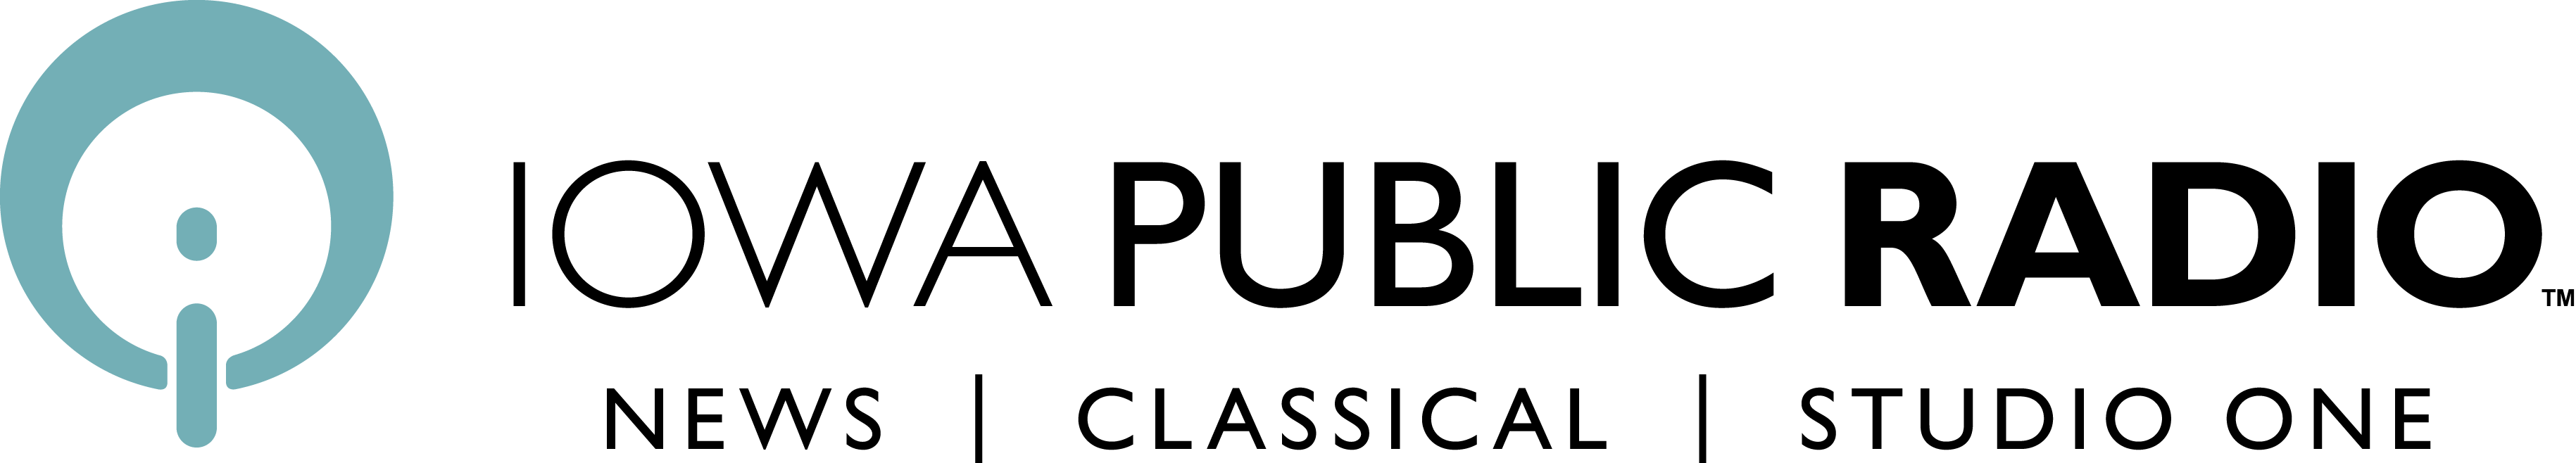 Iowa Public Radio logo